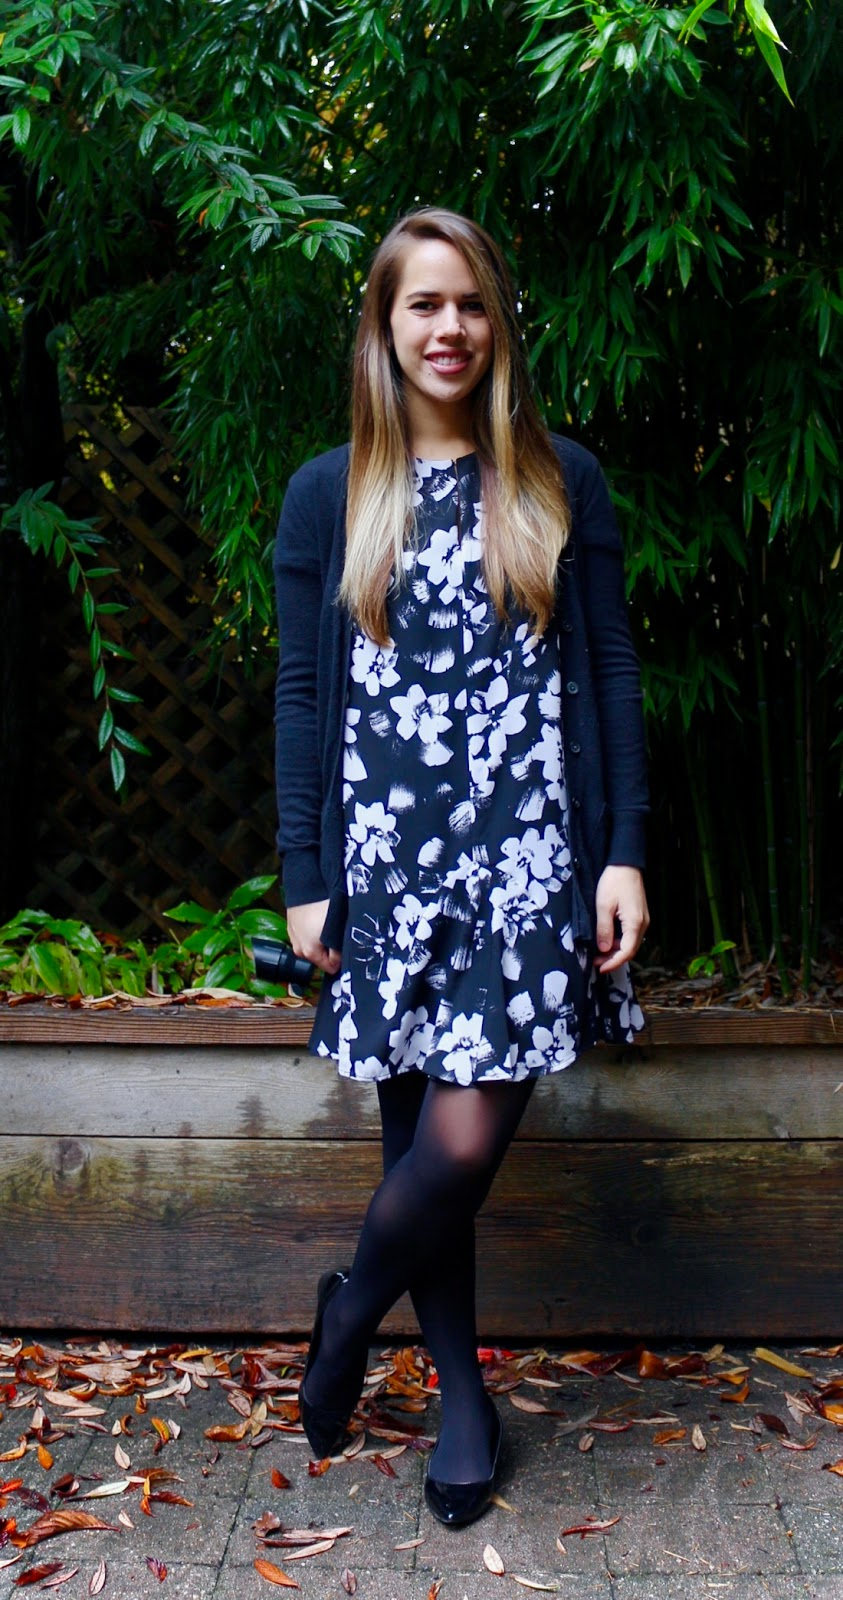 Jules in Flats - Ruffle Hem Floral Shift Dress (Business Casual Fall Workwear on a Budget)